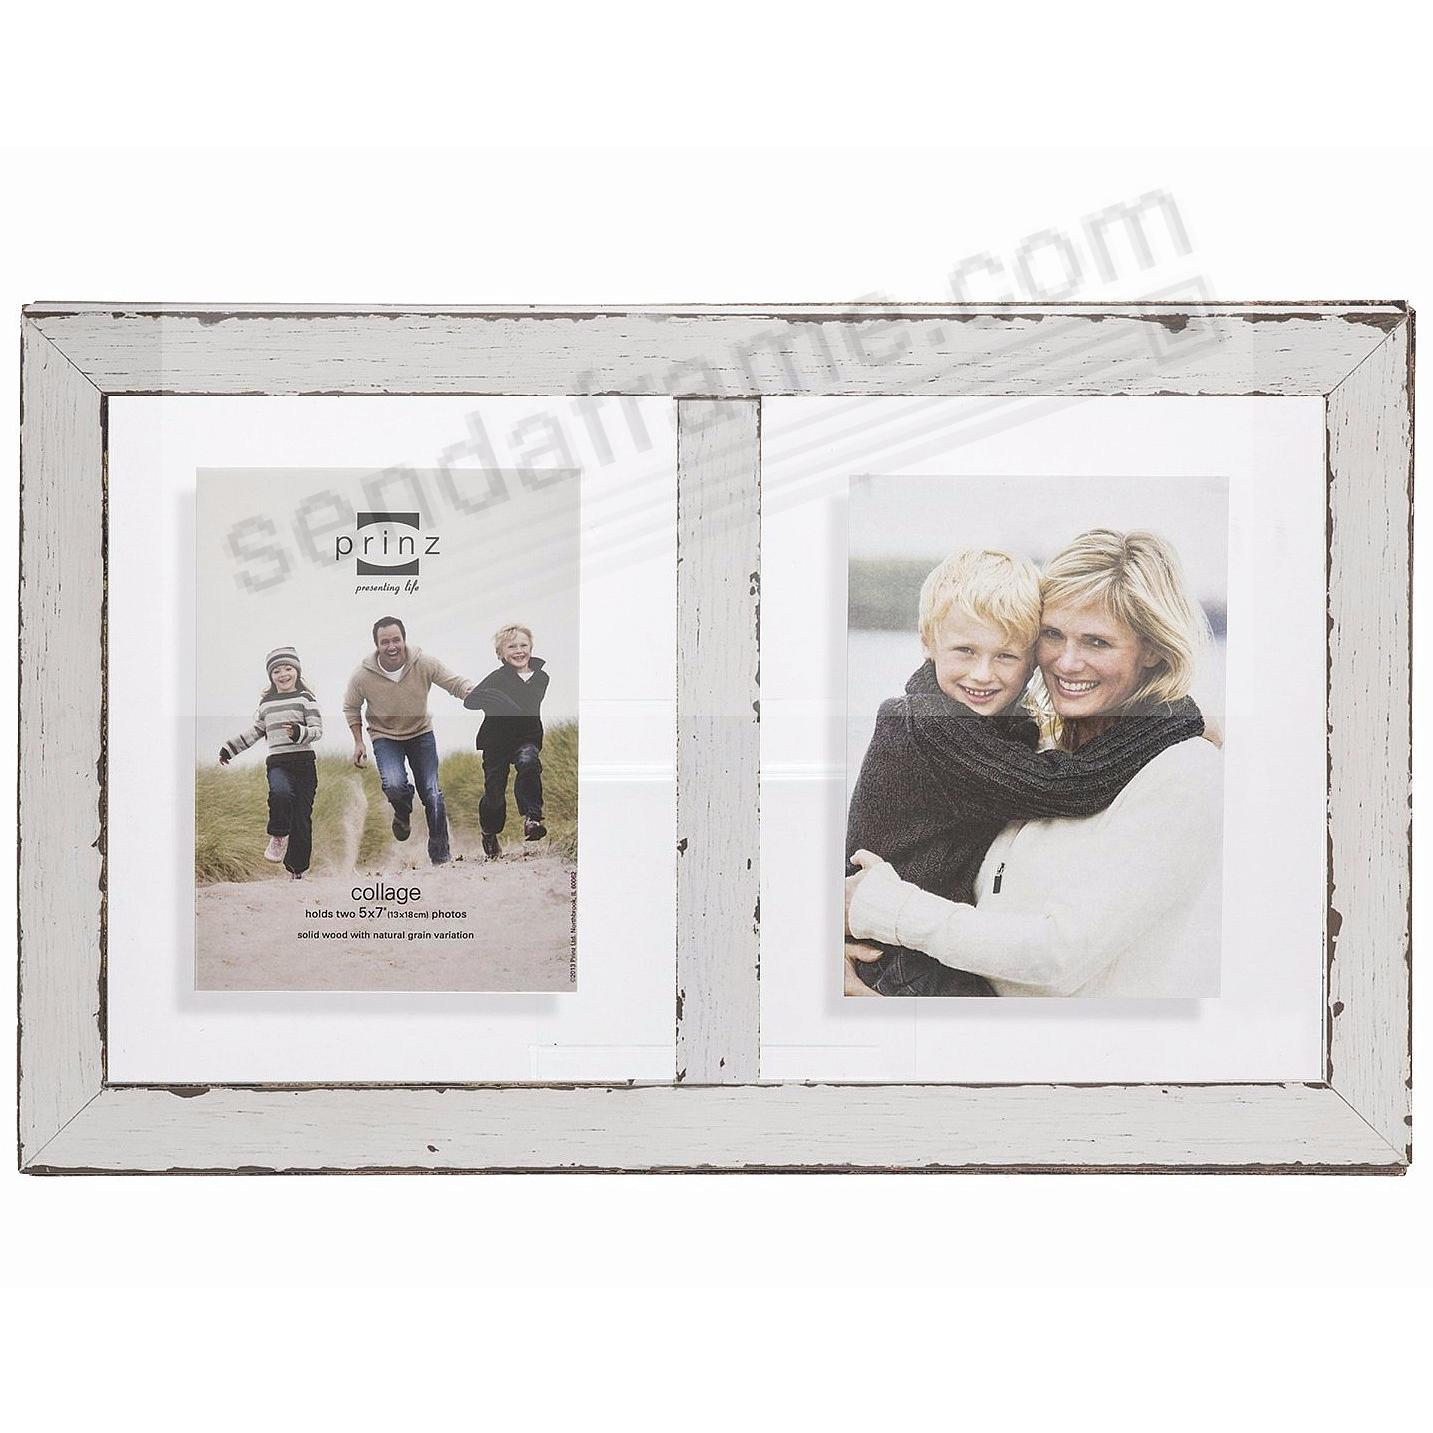 bristol distressed white wood float double 5x7 frame by prinz usa - Double 5x7 Picture Frame